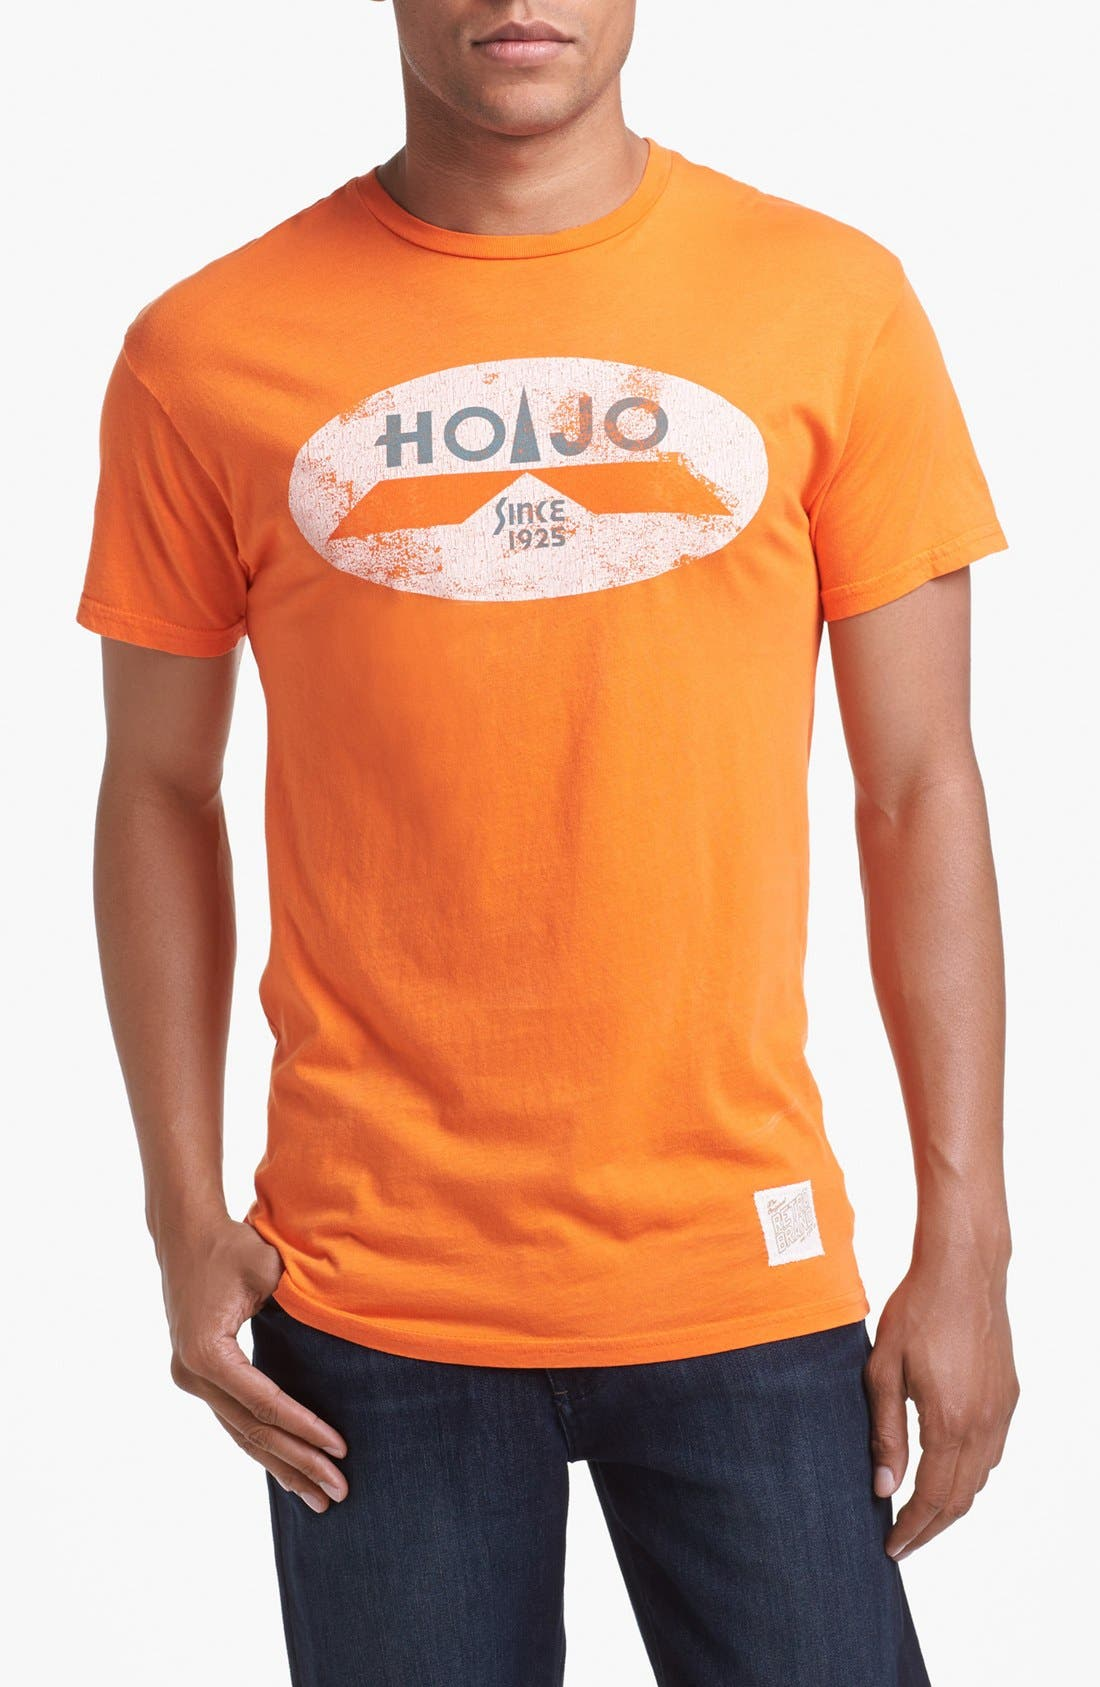 Alternate Image 1 Selected - Retro Brand 'HoJo' Crewneck T-Shirt